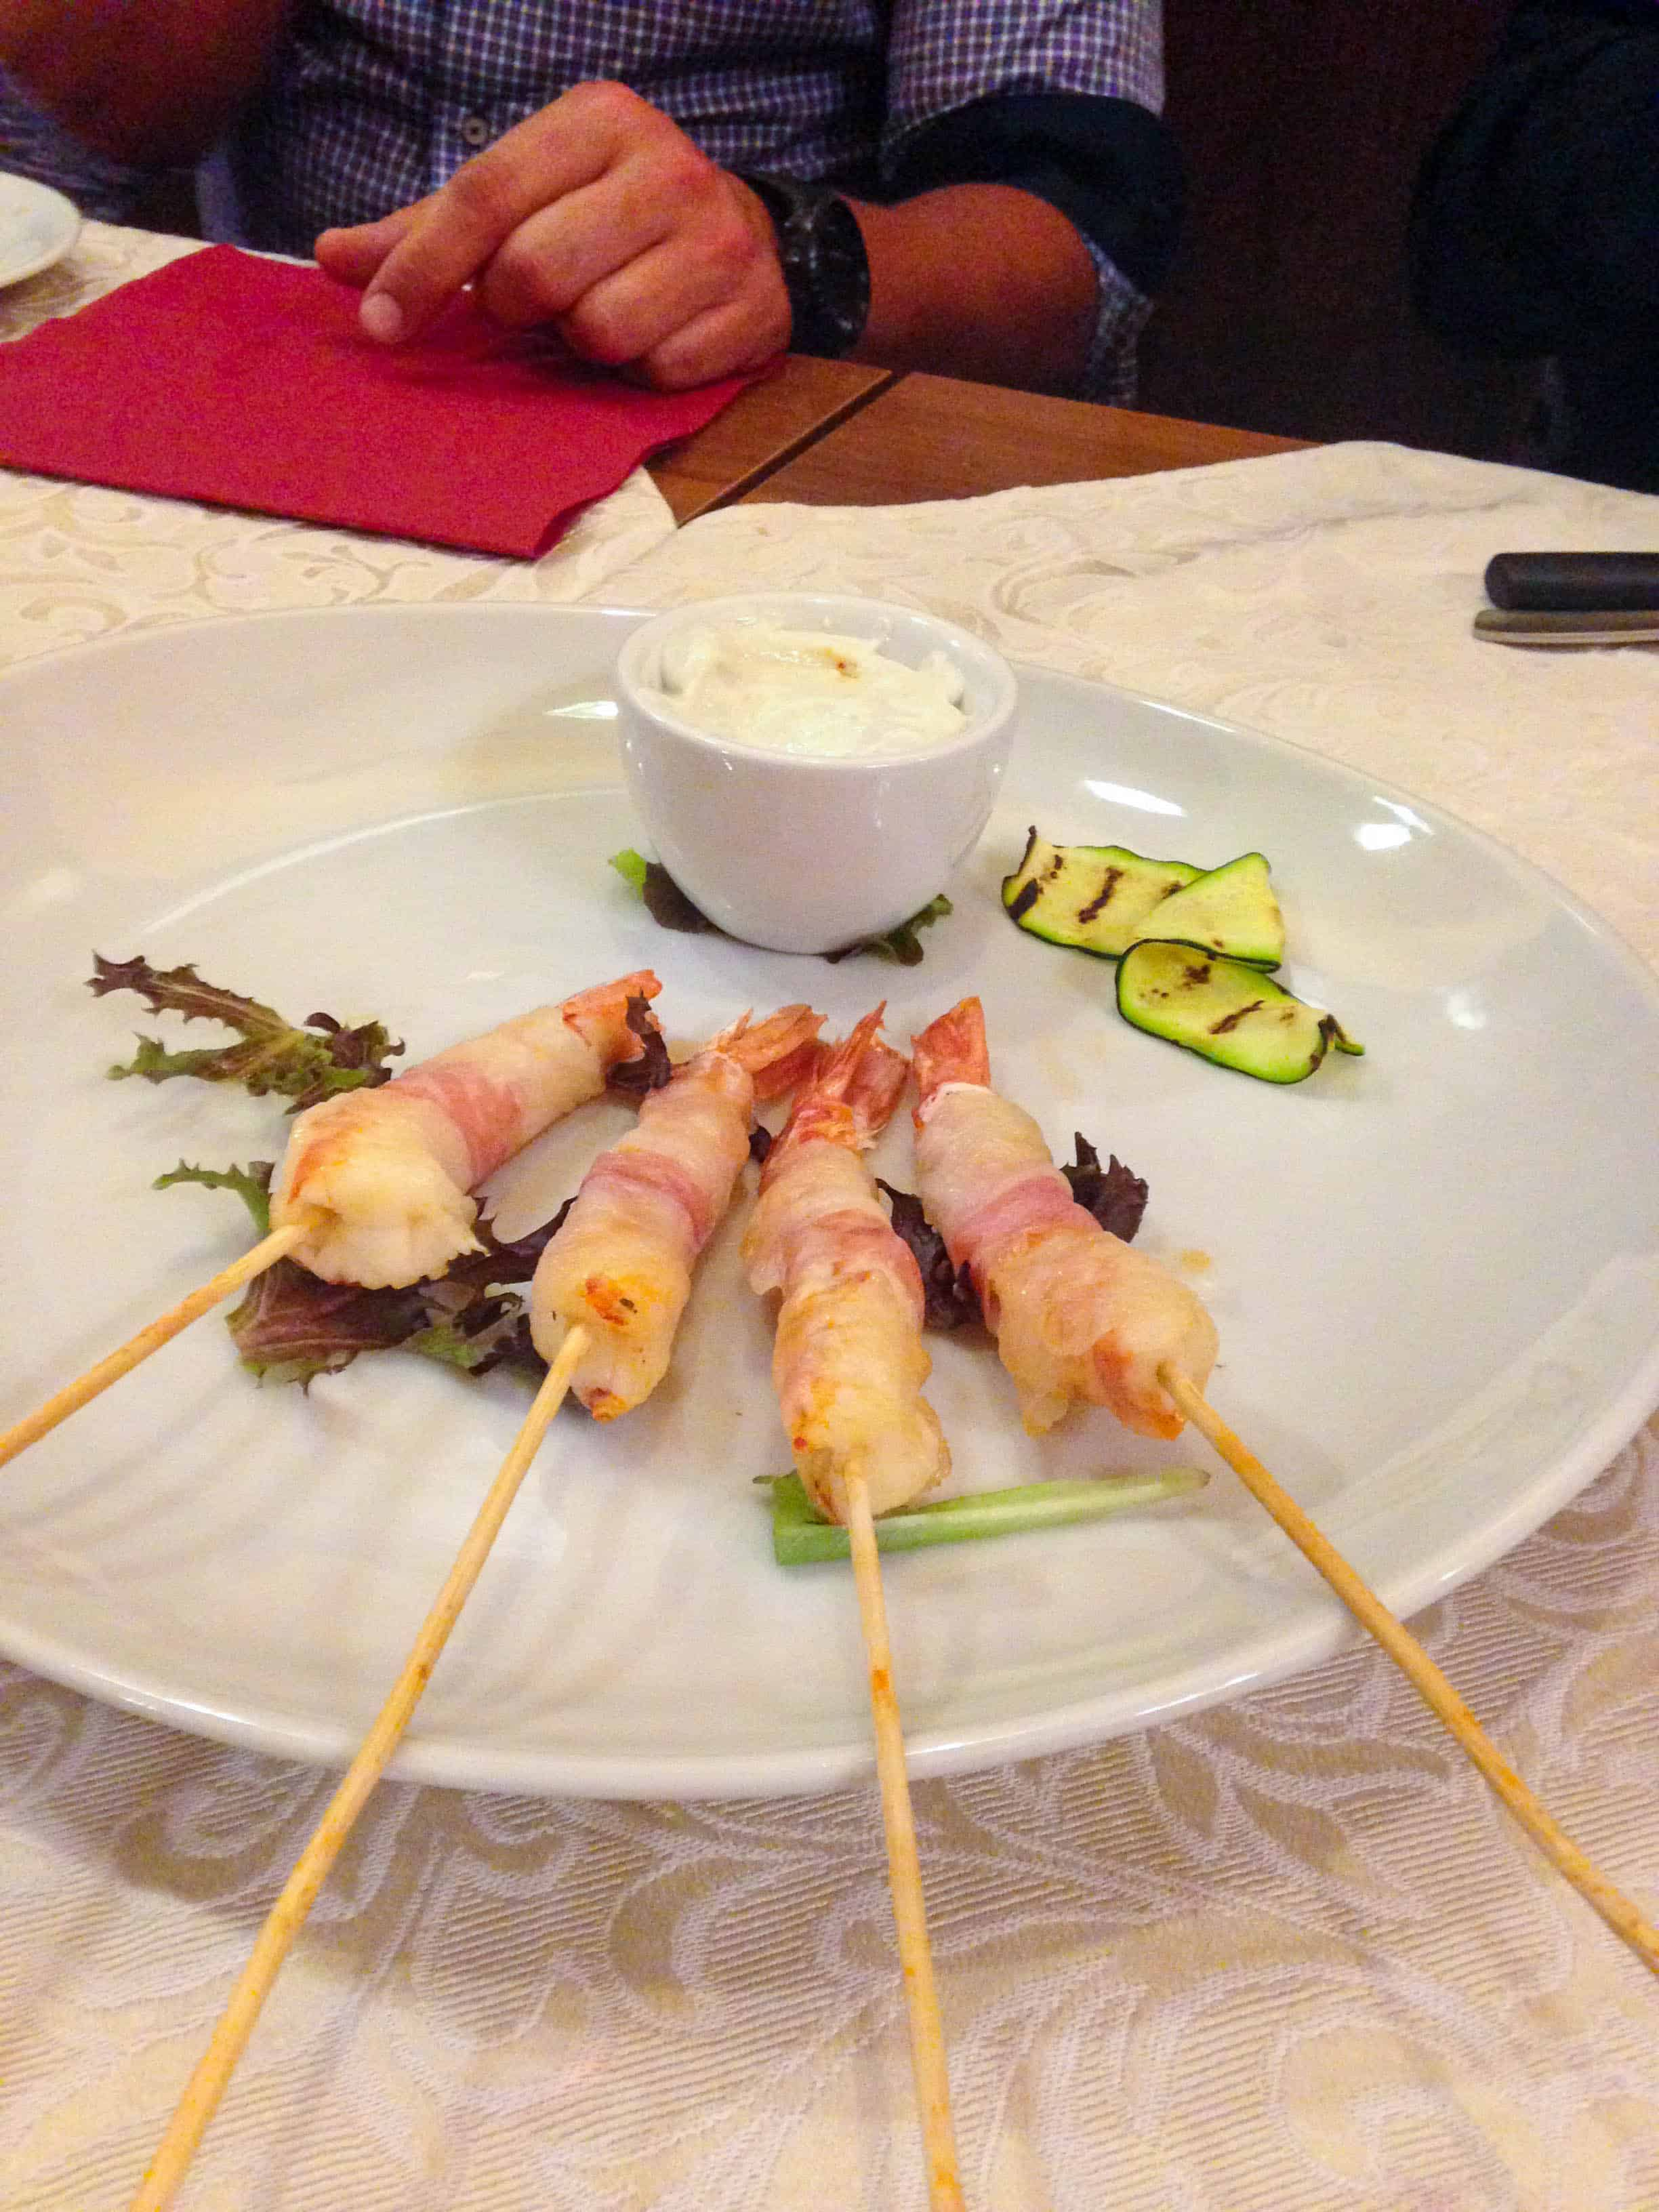 shrimp wrapped in lardo with gorgonzola sauce in Torino, Italy